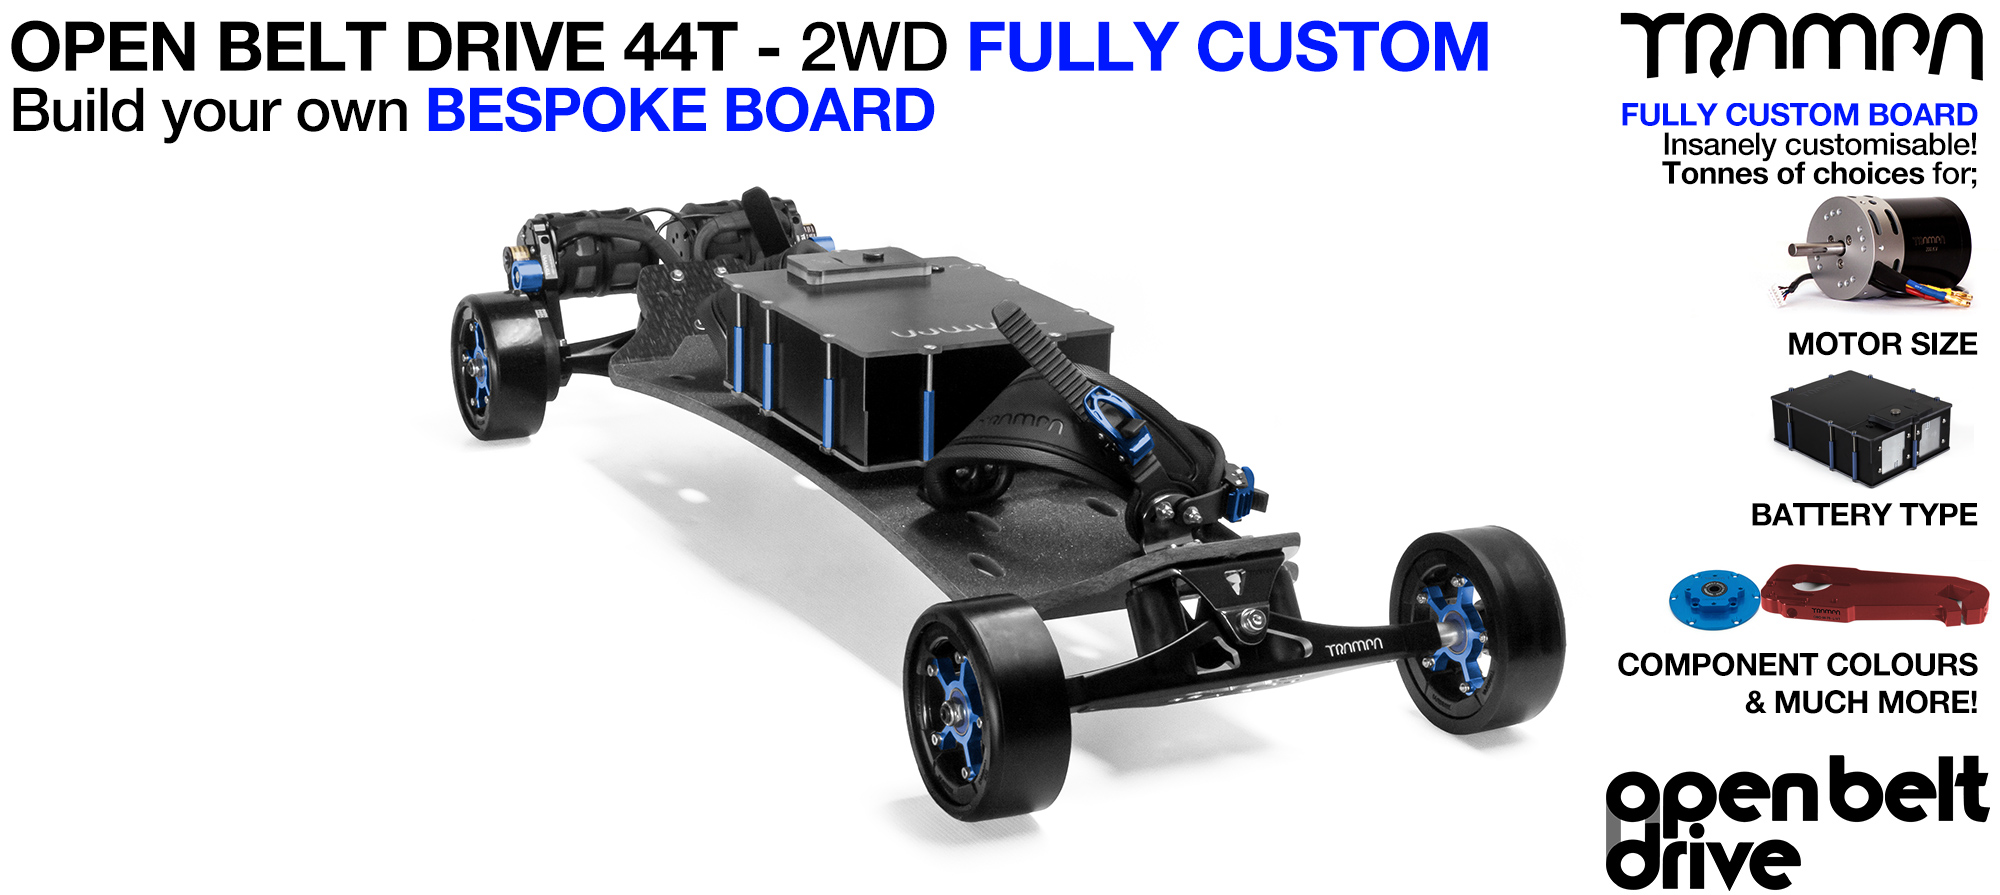 2WD 66T Open Belt Drive TRAMPA Electric Mountainboard with 125mm GUMMIES Giant Longboard Wheels & 44 Tooth Pulleys - CUSTOM